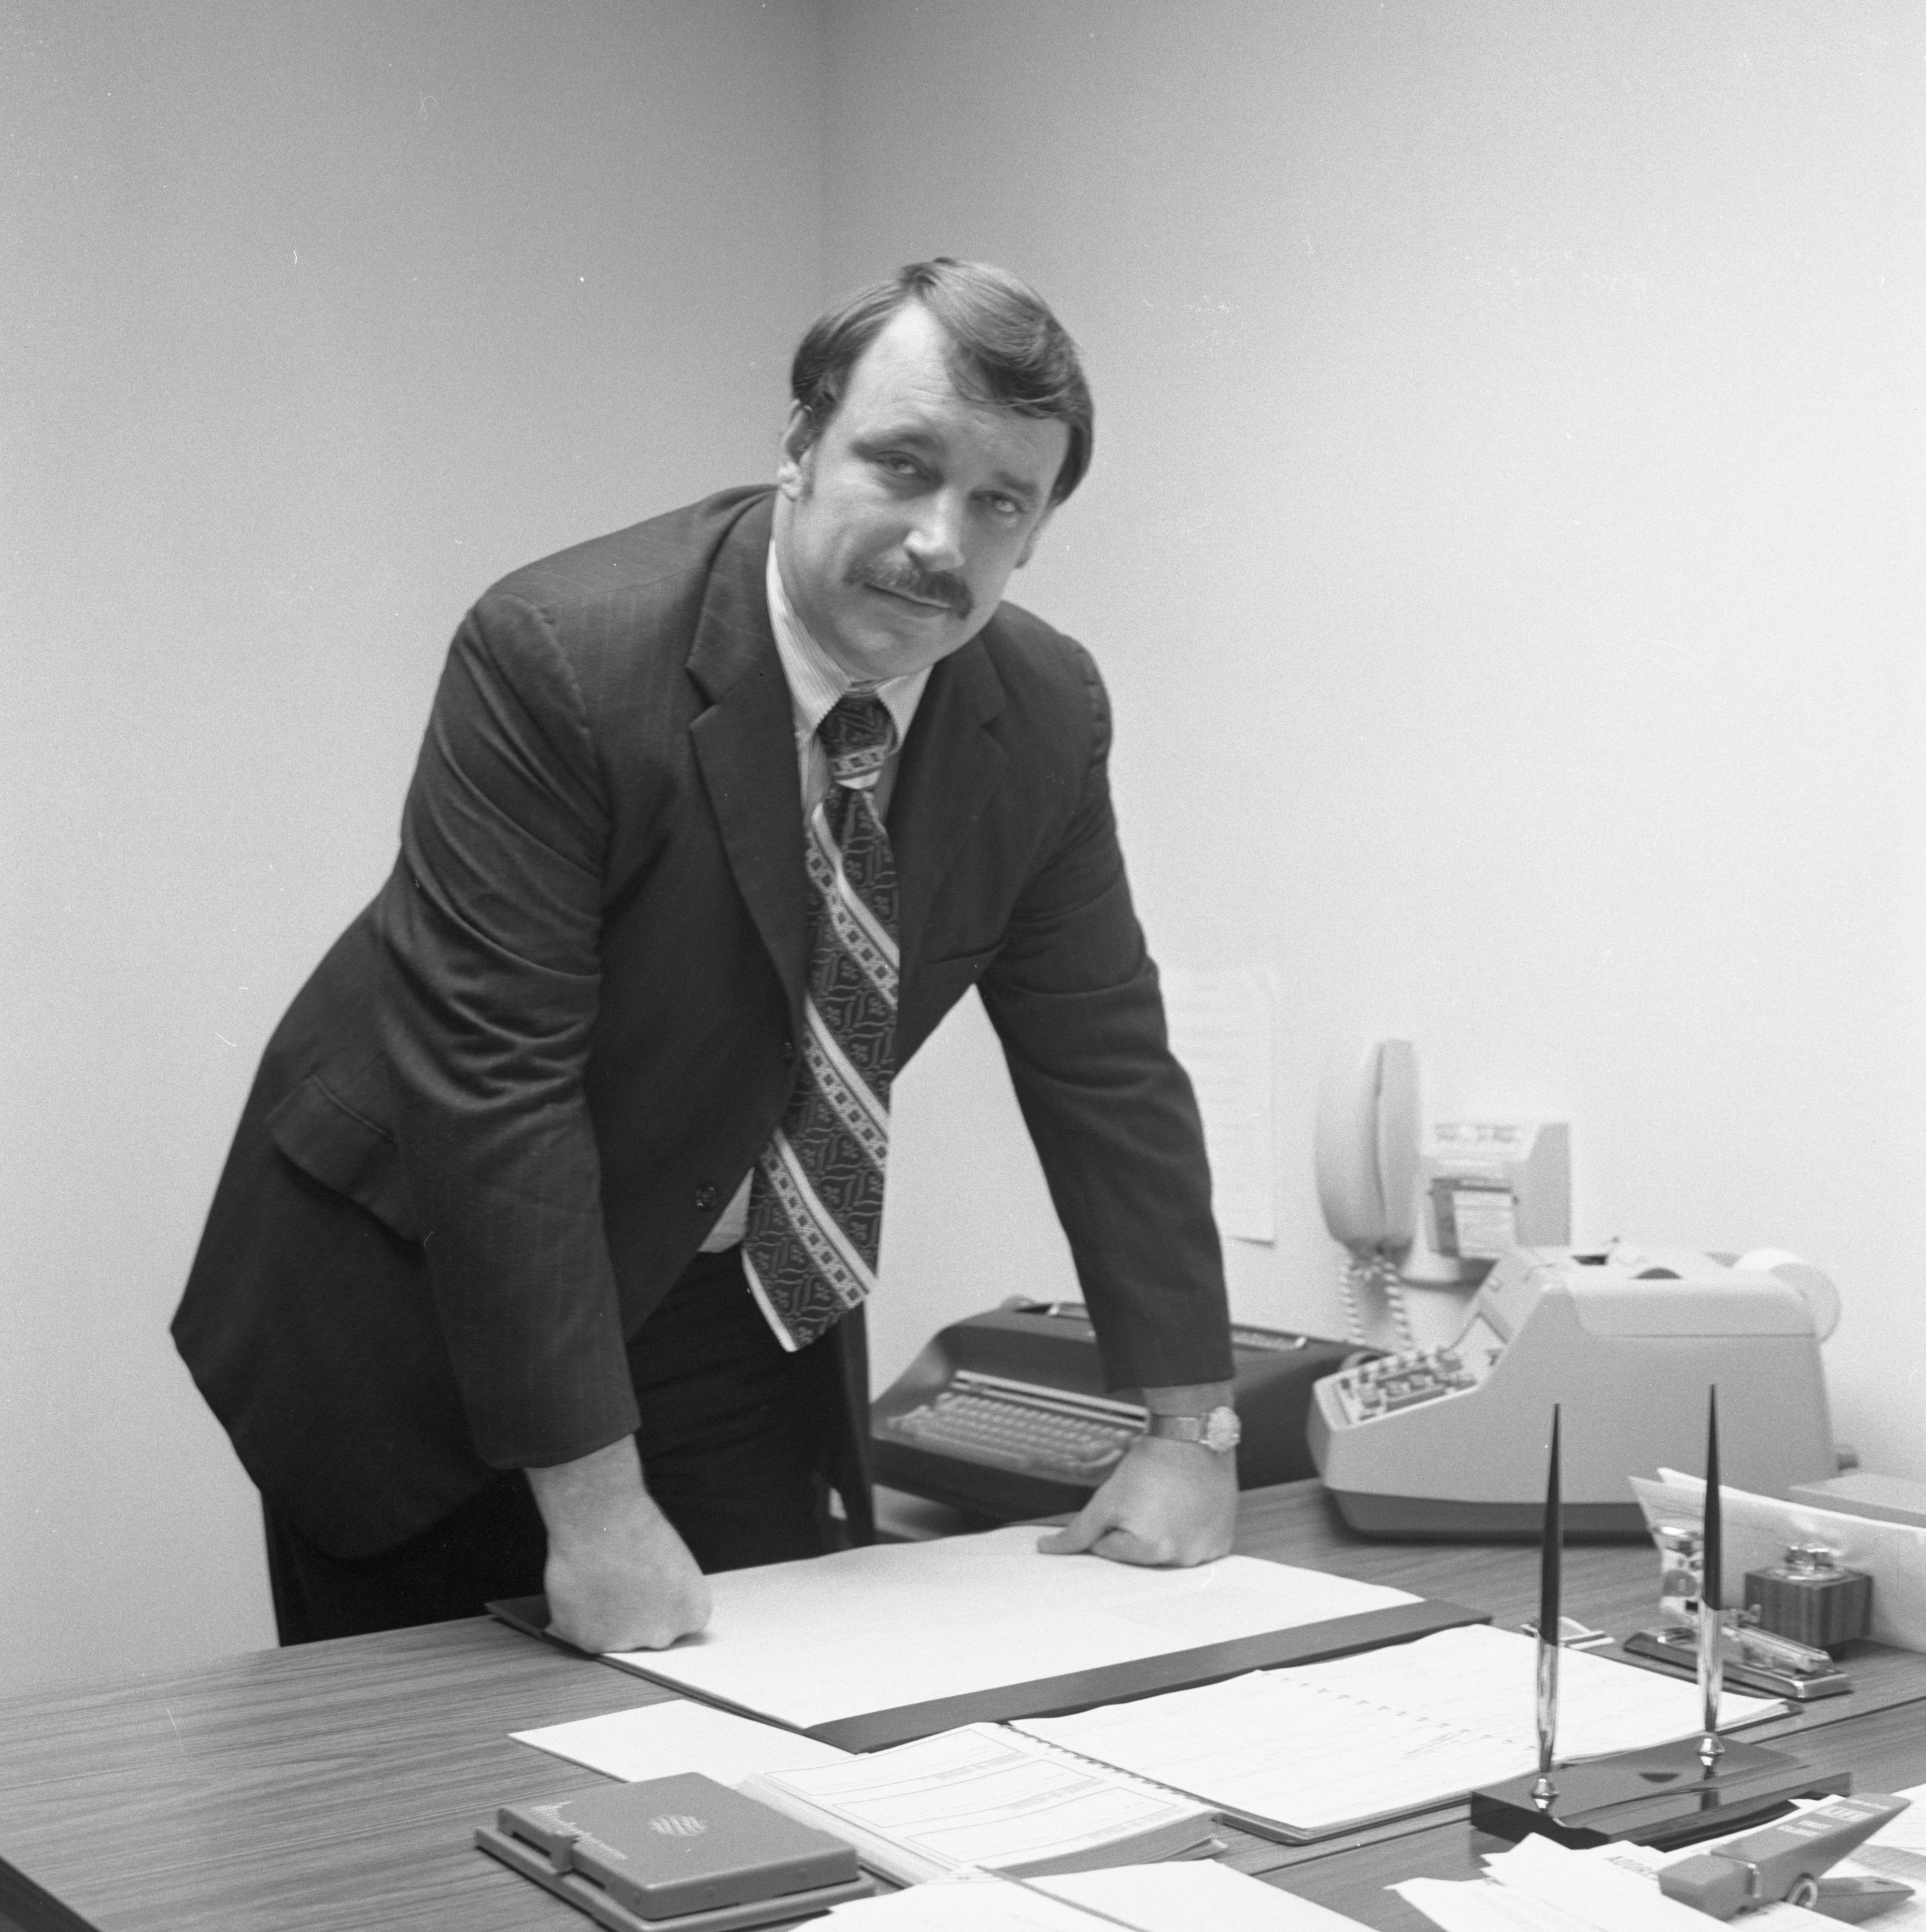 Bob Weaver, Second Ward Councilman, In His Office, November 1971 image